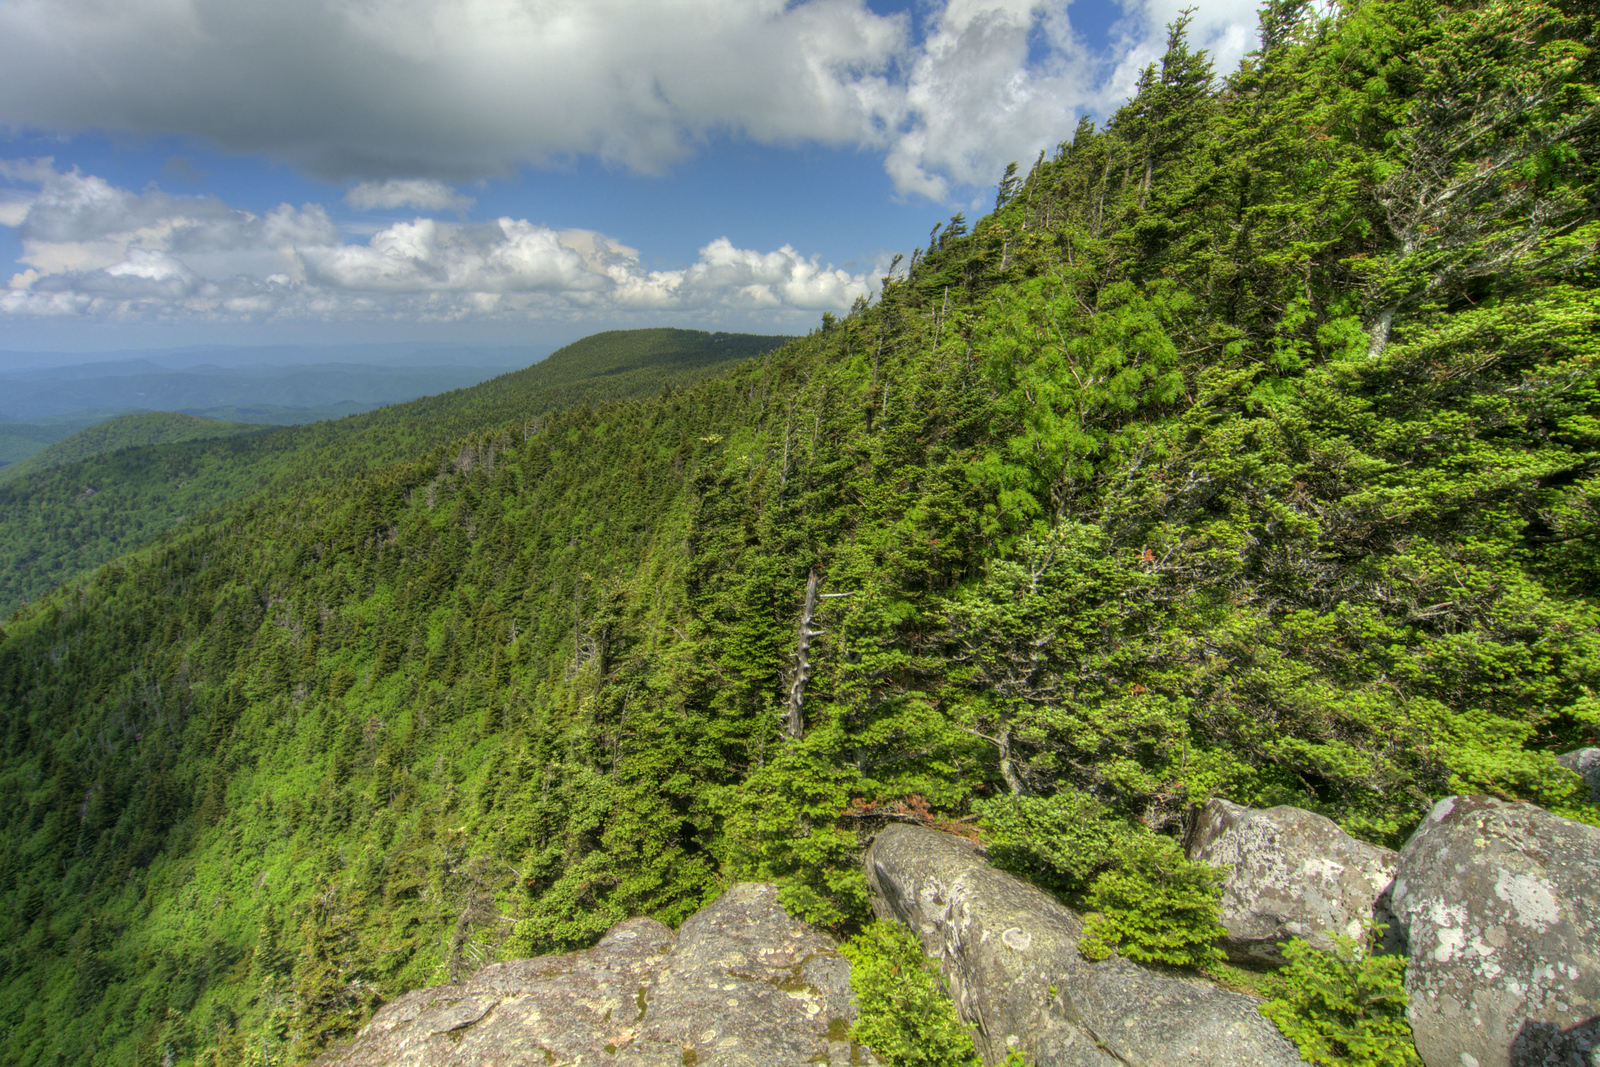 The view of windswept trees and the continuing mountain range from the scenic overlook on Roan High Bluff on Roan Mountain near the town of Roan Mountain, TN on Sunday, June 14, 2015. Copyright 2015 Jason Barnette Roan Mountain straddles the border between the towns of Roan Mountain, Tennessee and Bakersville, North Carolina. The top of the mountain is known for having the largest natural rhododendron gardens in the country, maintained and operated by the National Forest Service. The recreation area includes hiking trails, the gardens, scenic overlooks, and the Appalachian Trail.